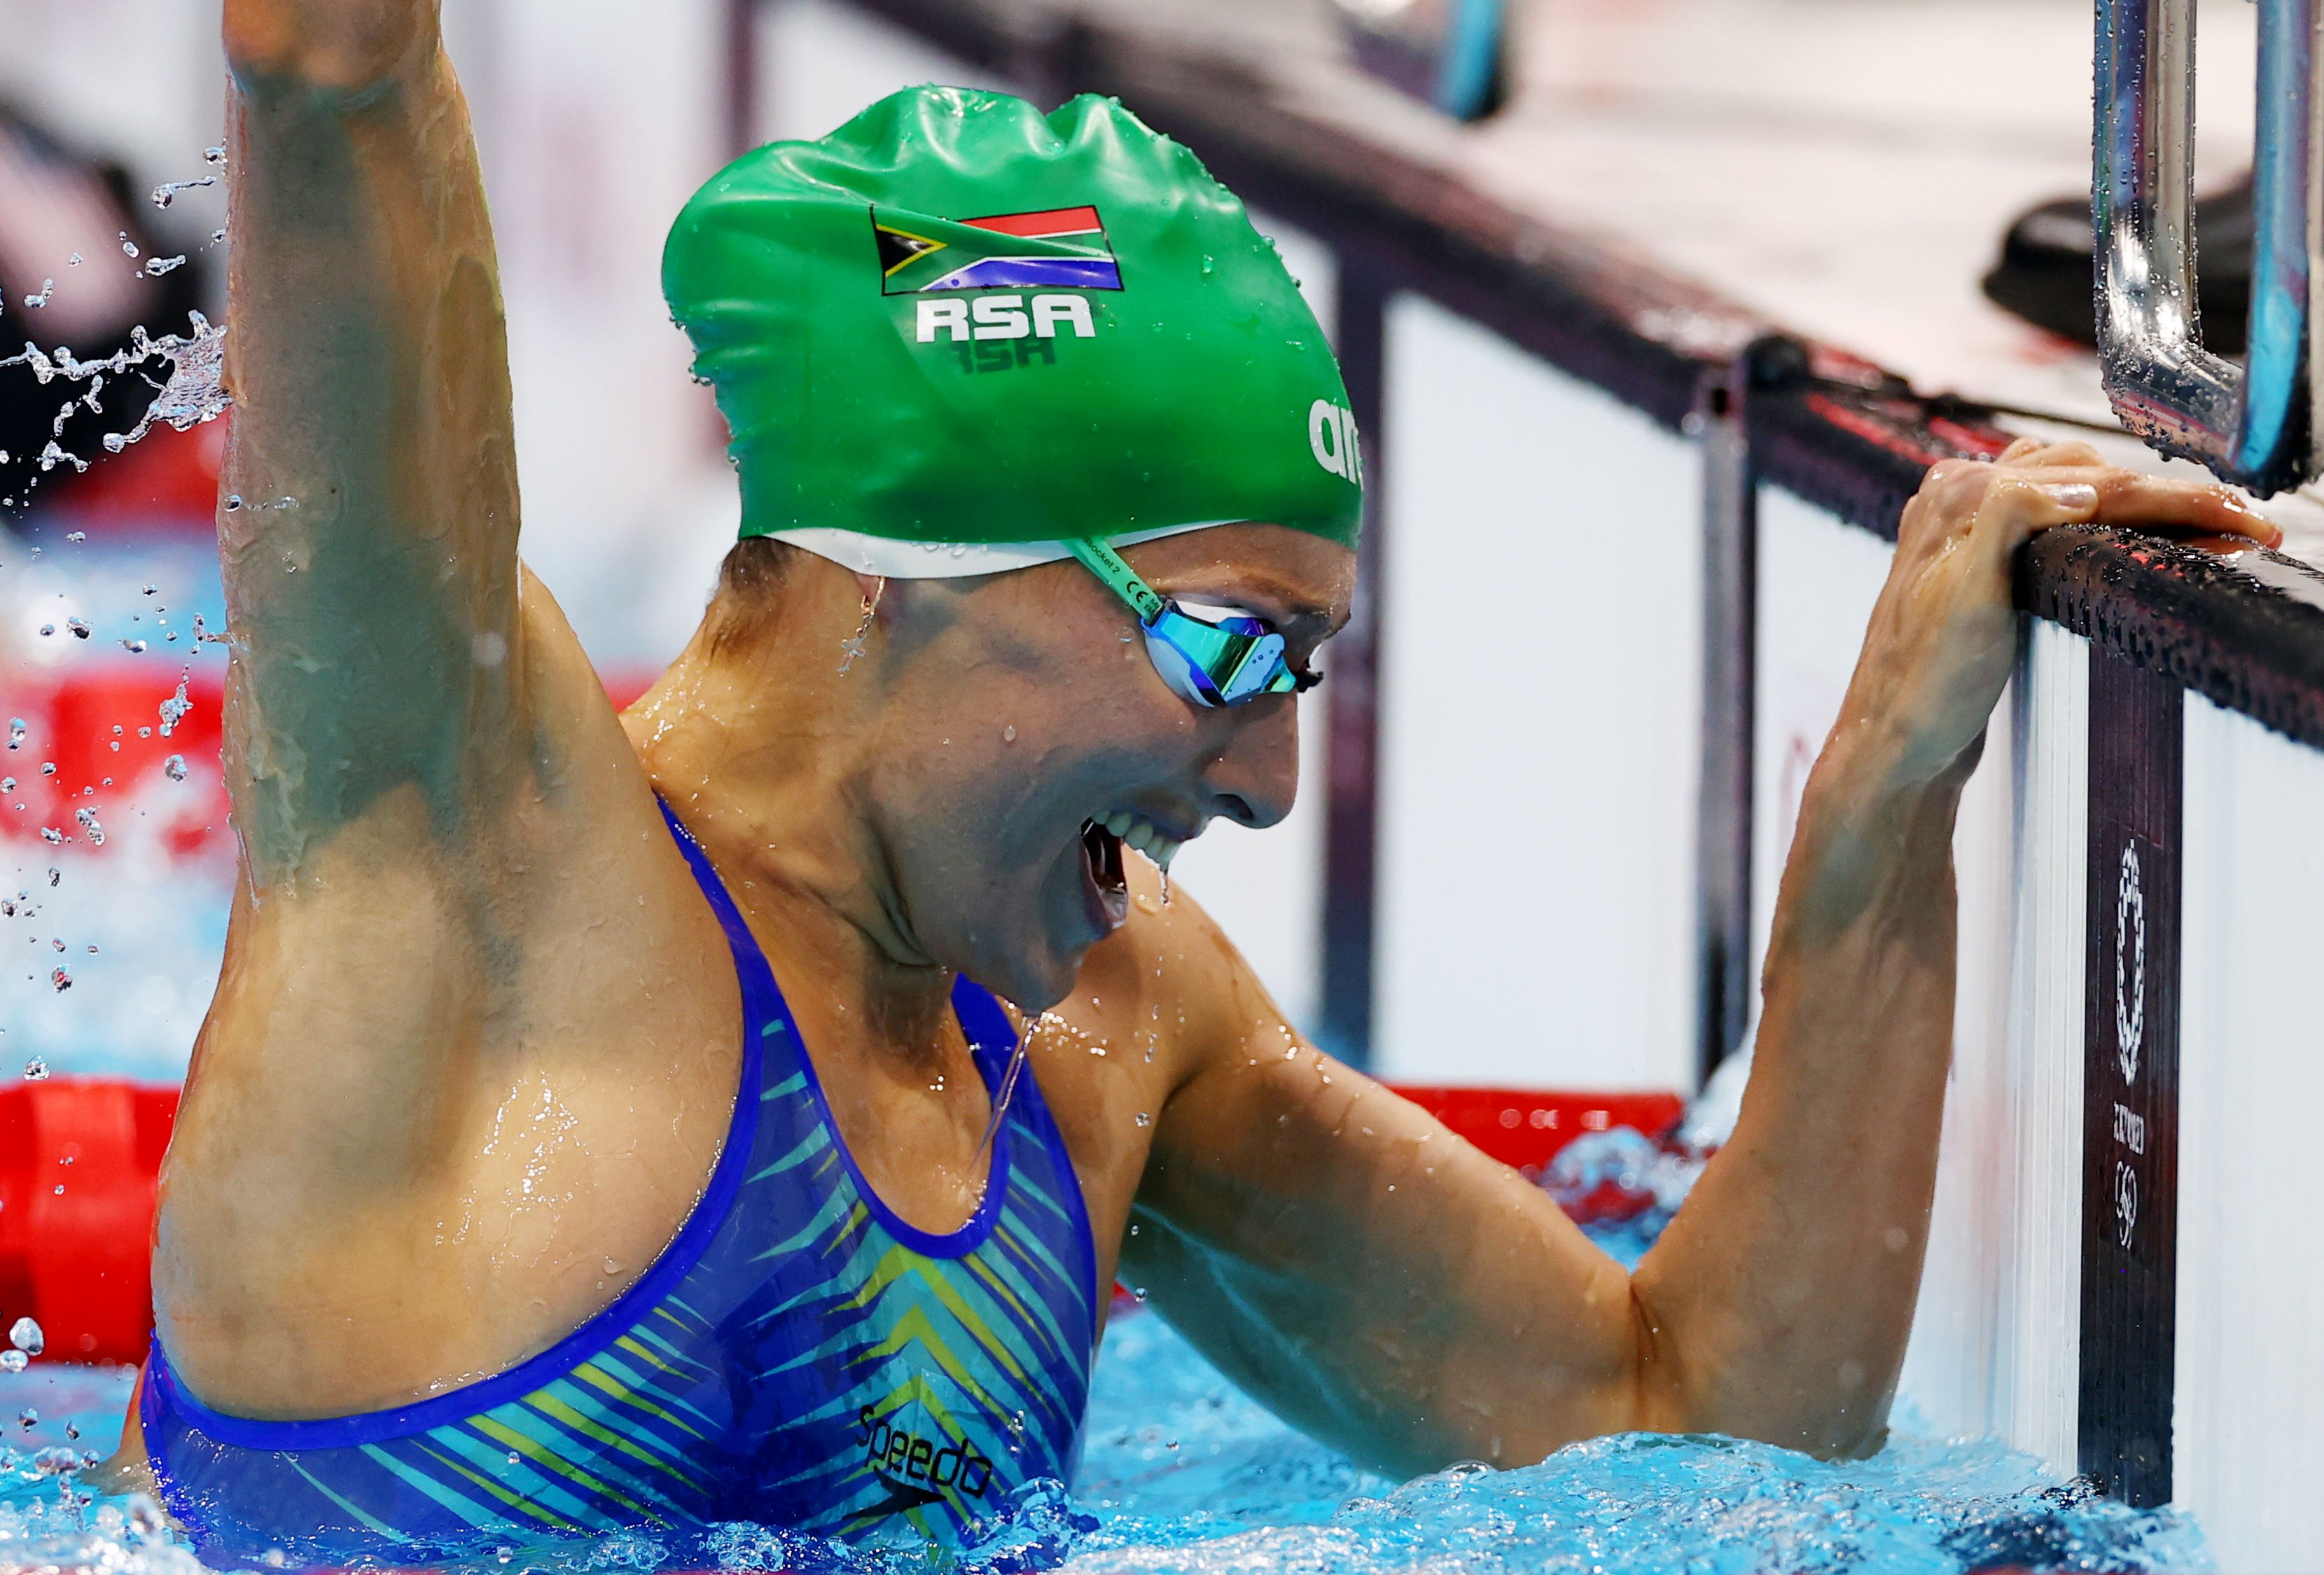 Tokyo 2020 Olympics - Swimming - Women's 200m Breaststroke - Final  - Tokyo Aquatics Centre - Tokyo, Japan - July 30, 2021. Tatjana Schoenmaker of South Africa reacts after setting a new world record to win the gold medal REUTERS/Stefan Wermuth